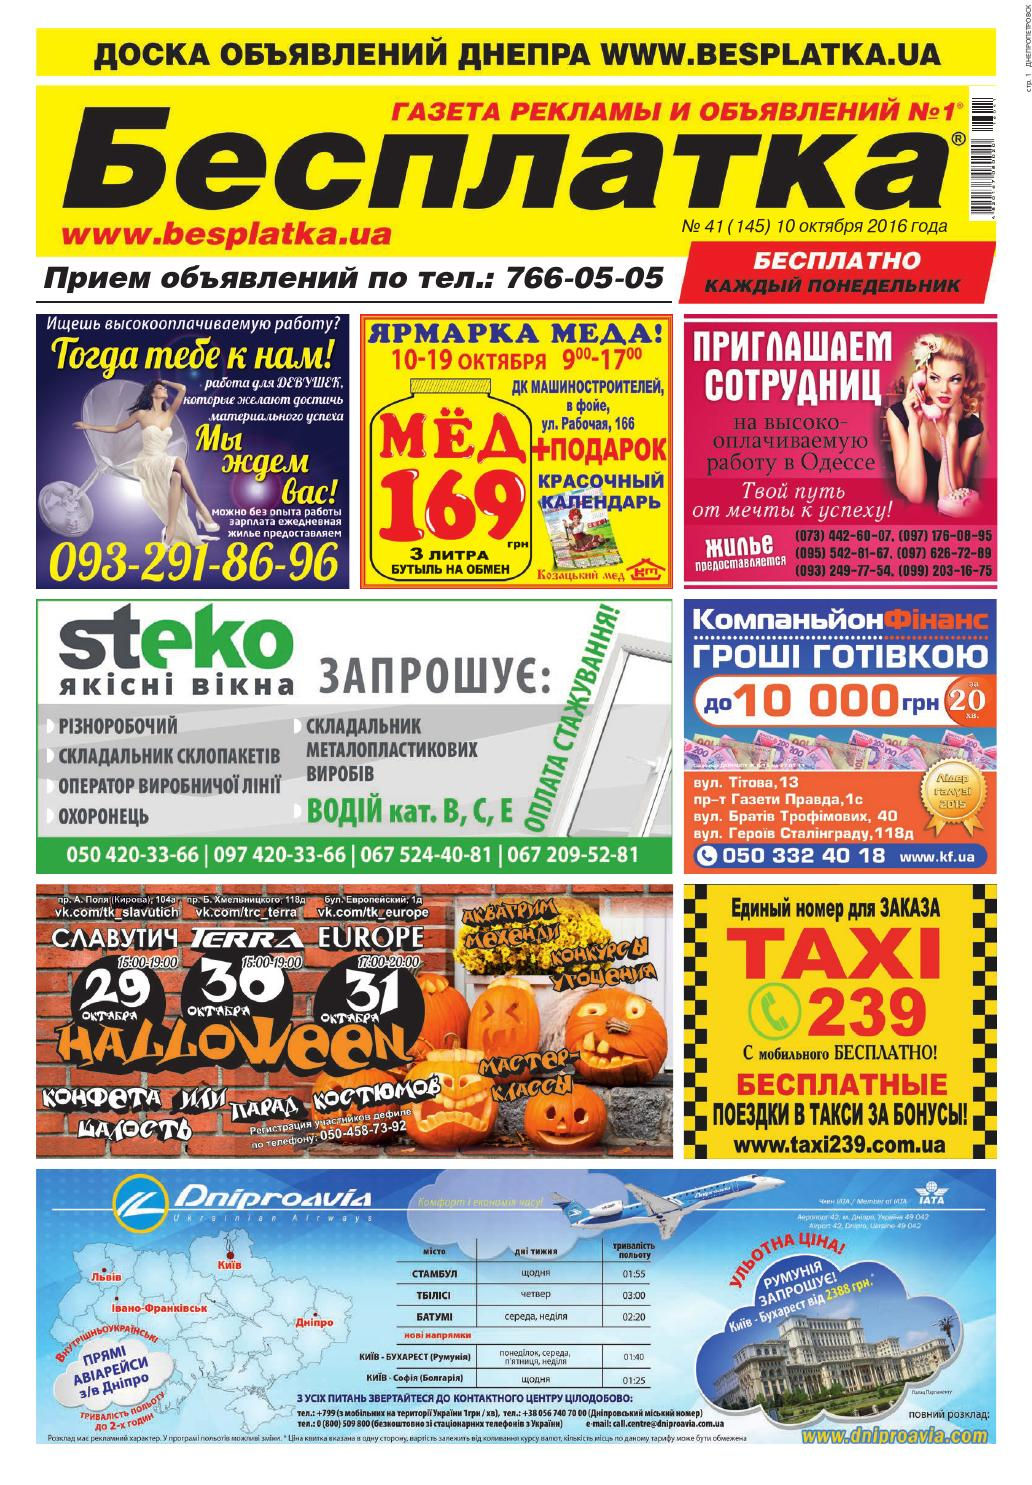 Besplatka  41 Днепр by besplatka ukraine - issuu 9d2d489816e